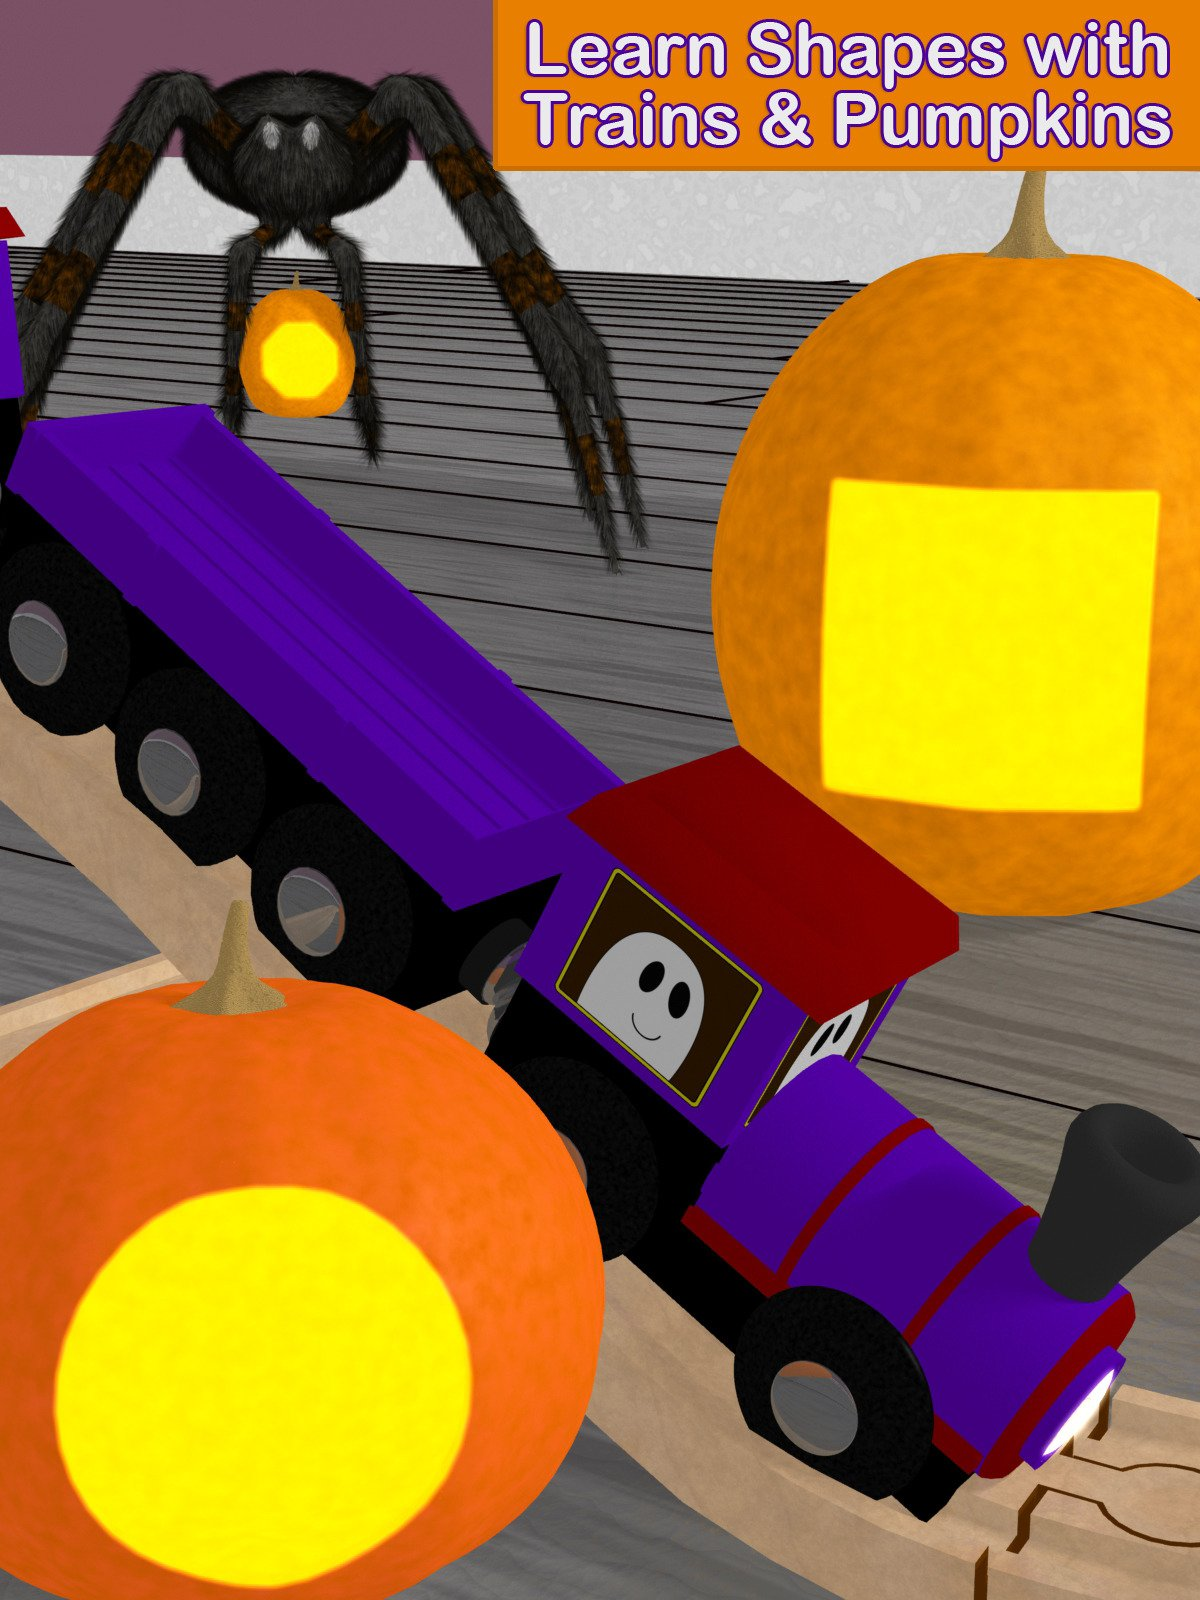 Learn Shapes with Trains & Pumpkins